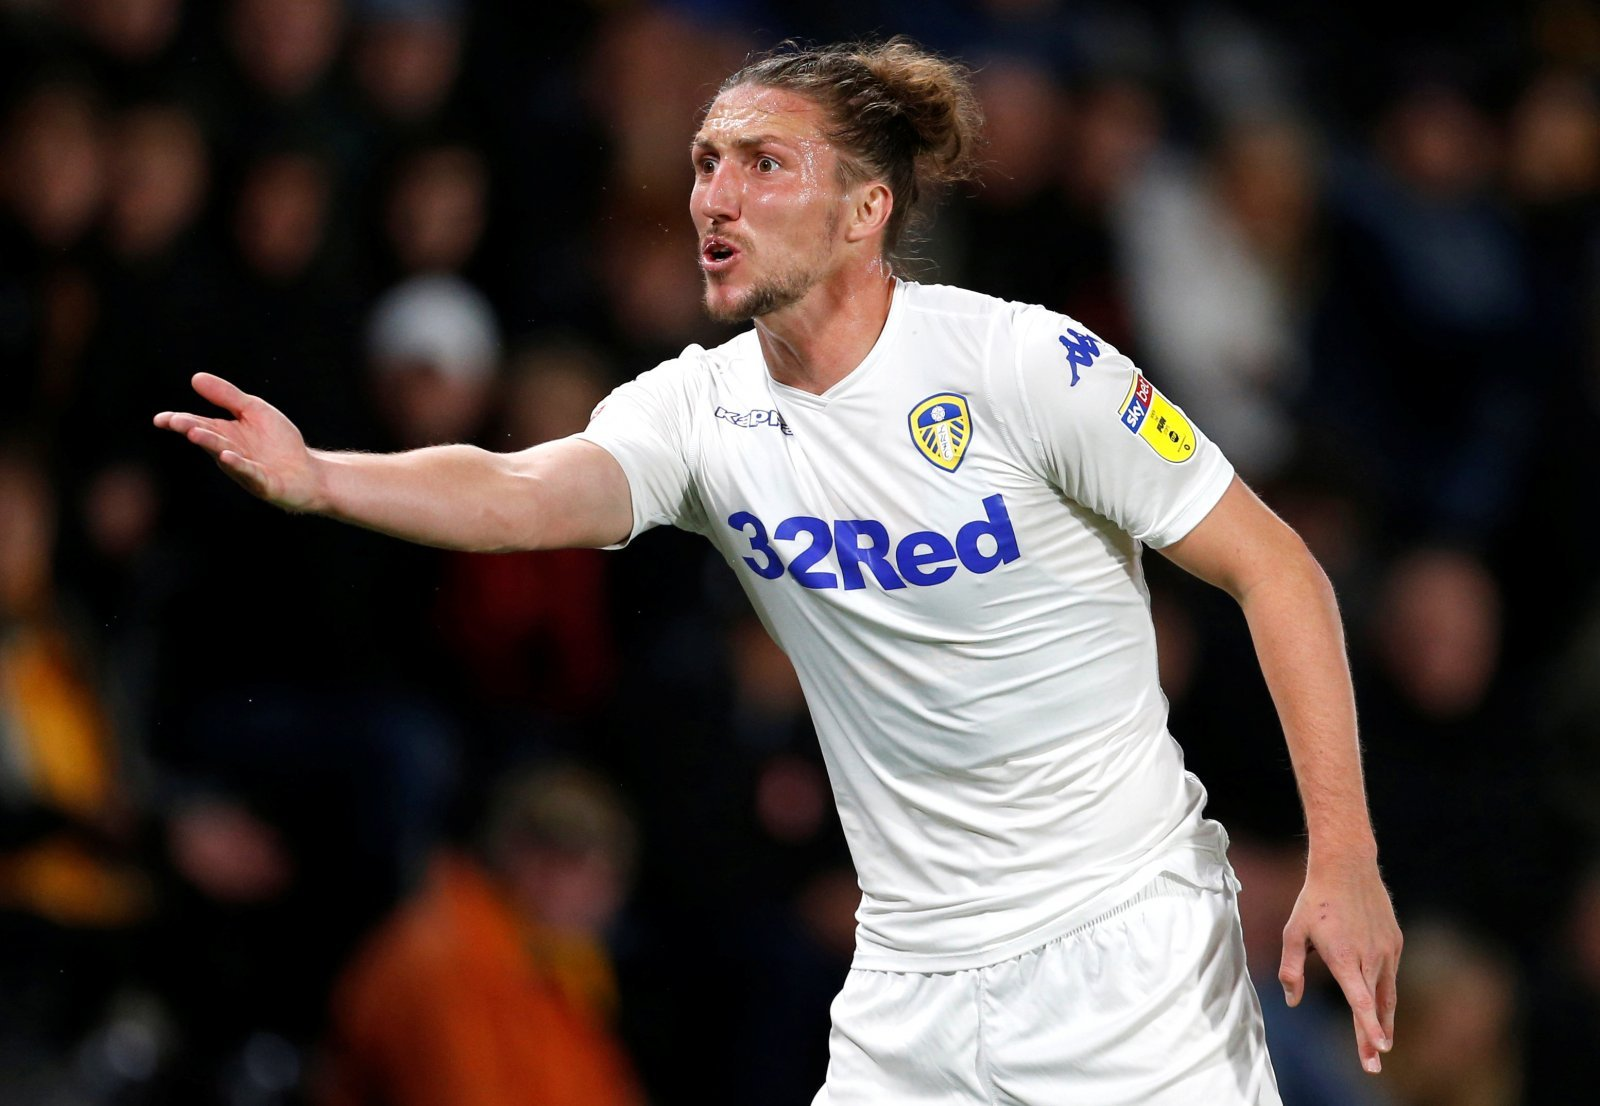 Leeds fans on Twitter fume at Ayling injury